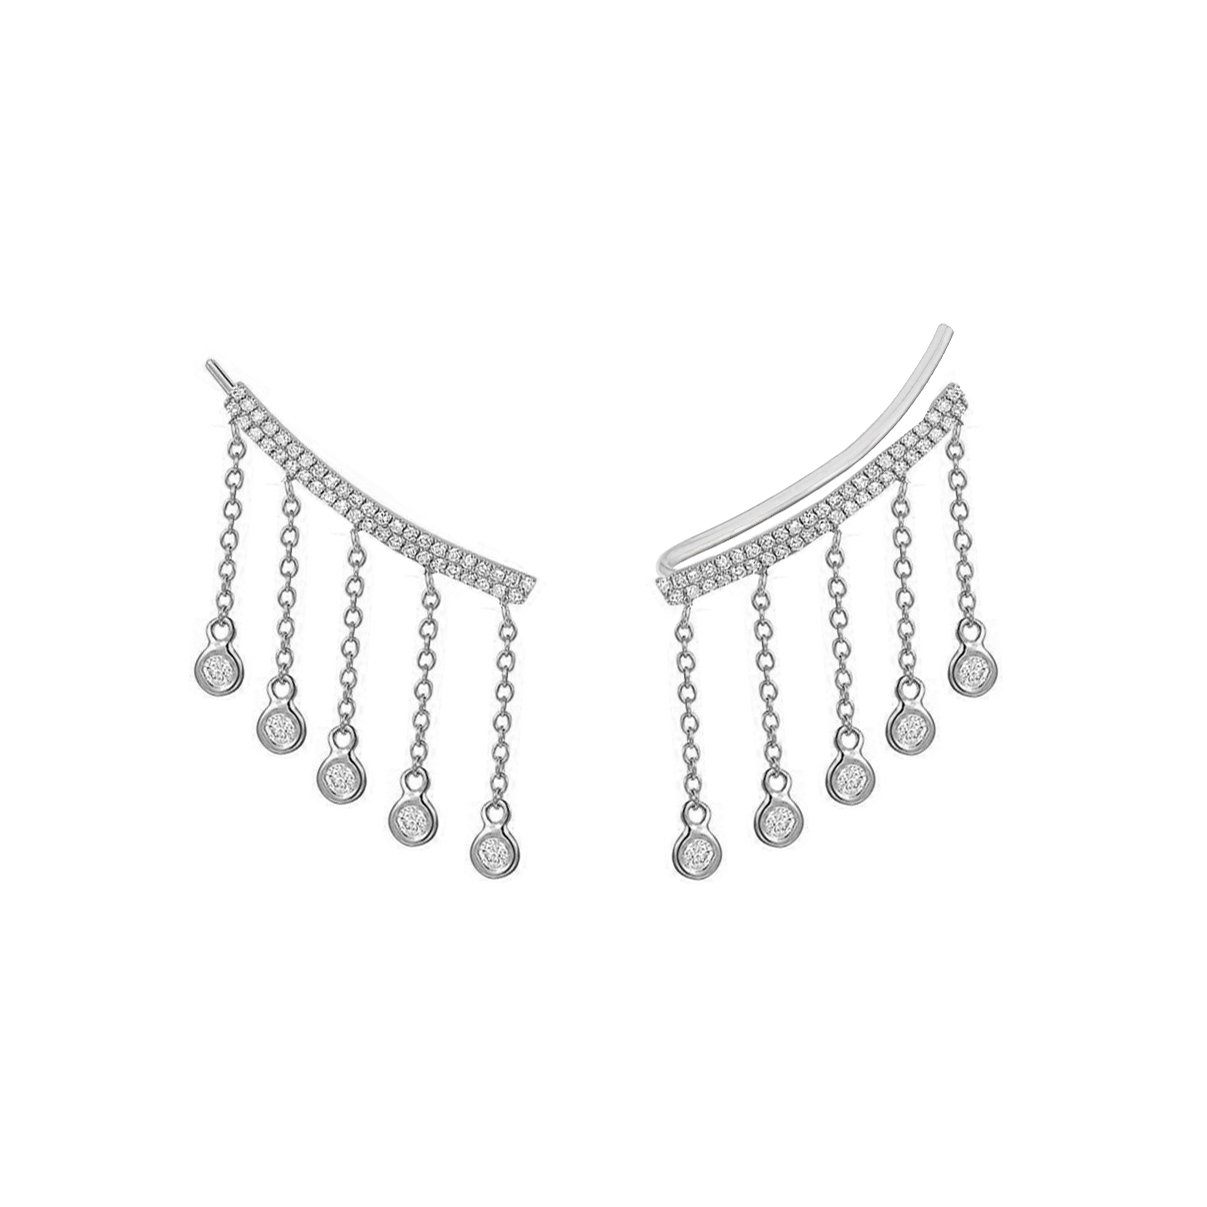 Earrings - Diamond Drop Climbing Earrings